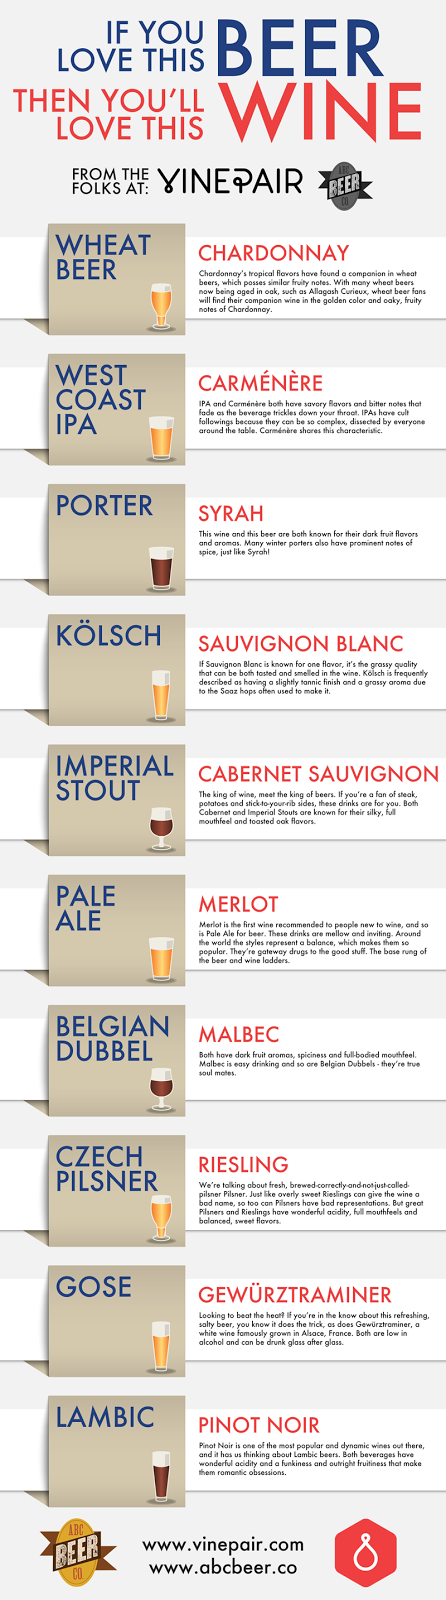 http://www.foodbeast.com/2014/02/07/a-wine-guide-for-beer-lovers-and-vice-versa/